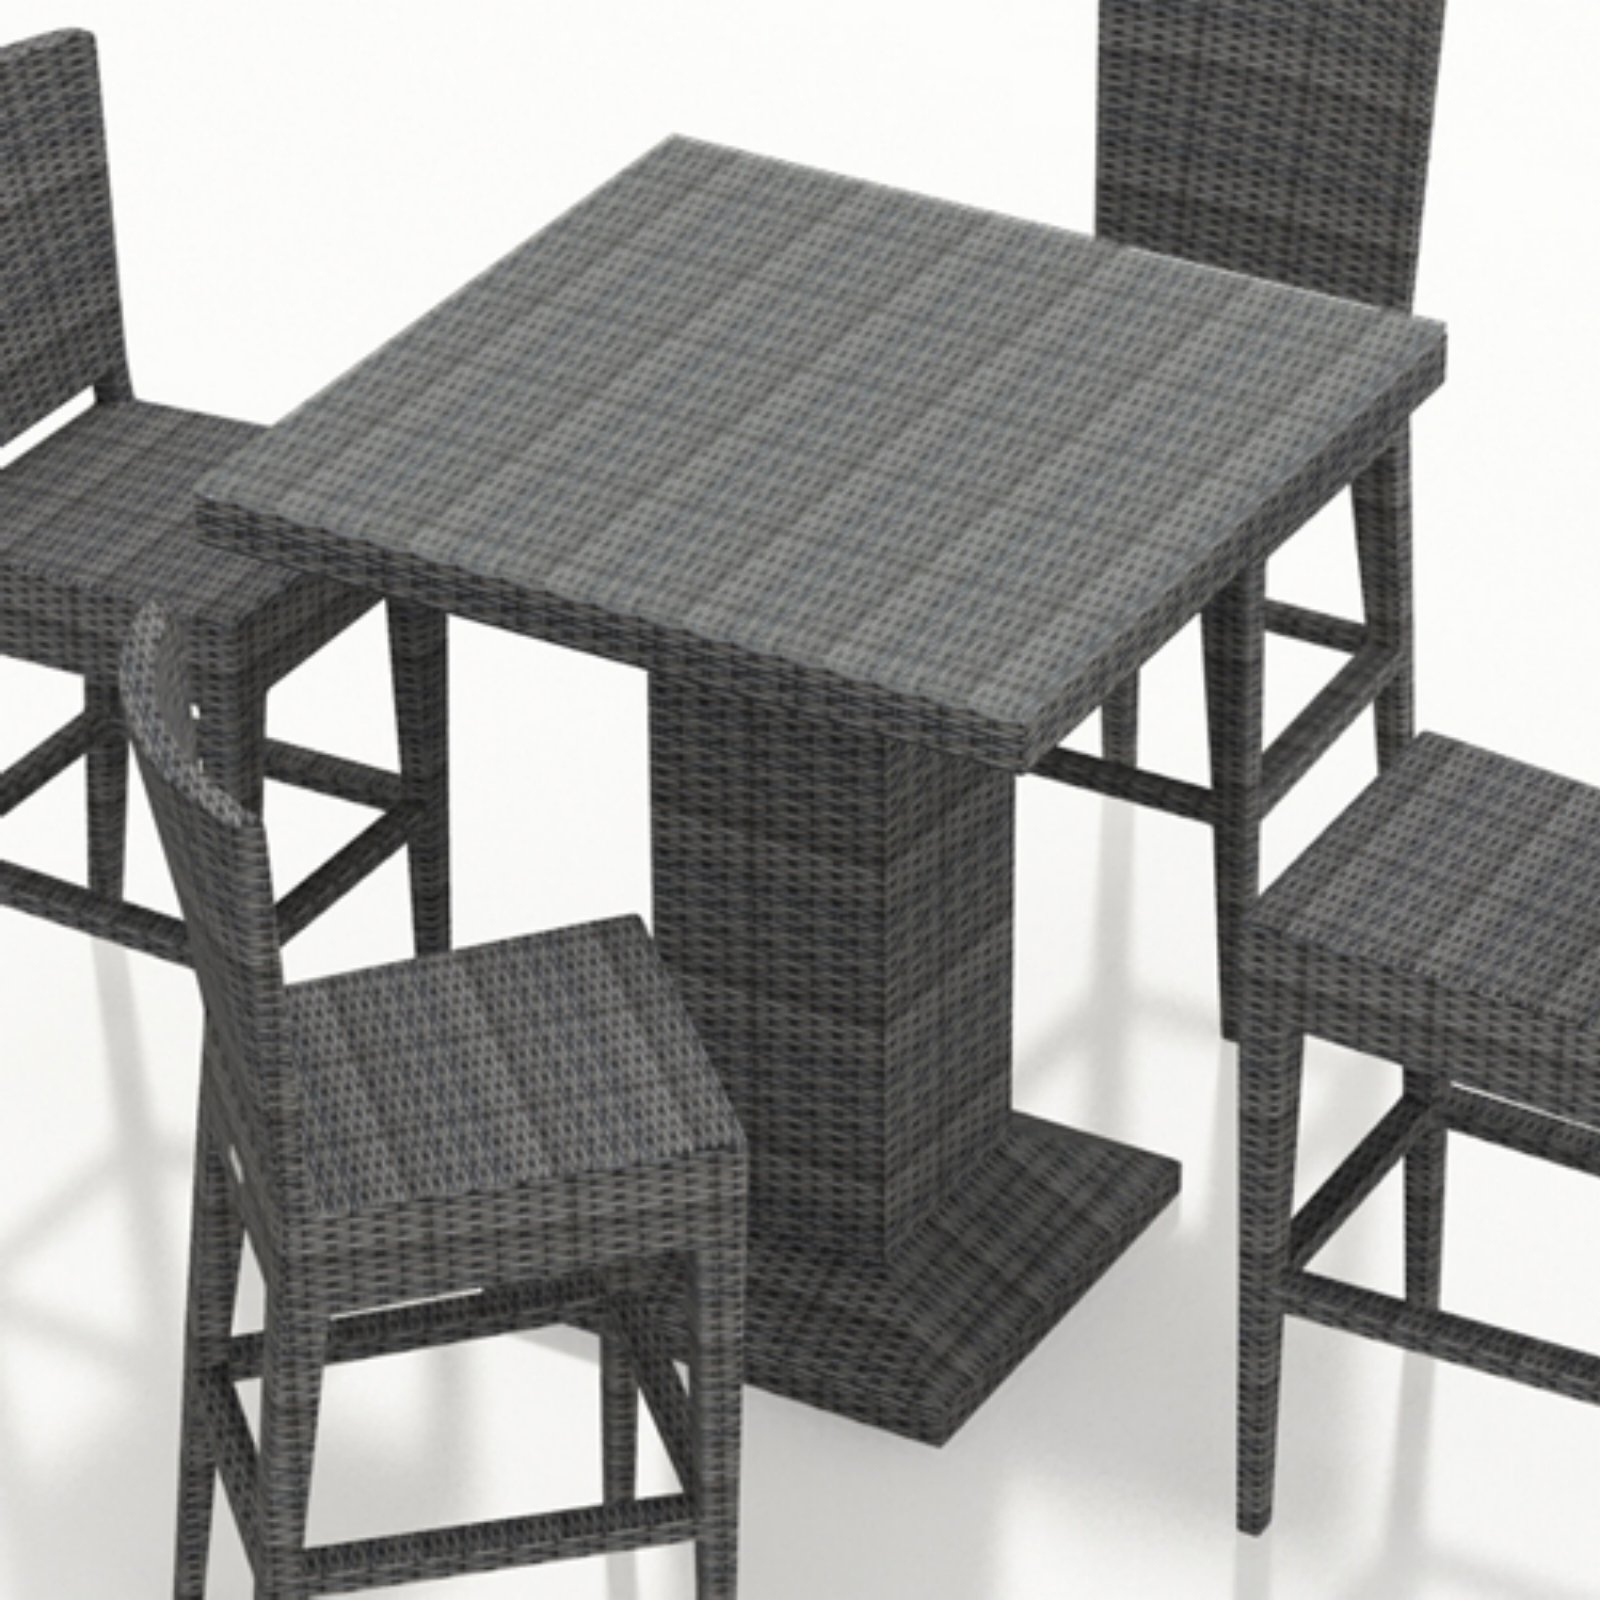 Best And Newest Patio Square Bar Dining Tables Throughout Outdoor Harmonia Living District Resin Wicker Square Bar (View 20 of 25)